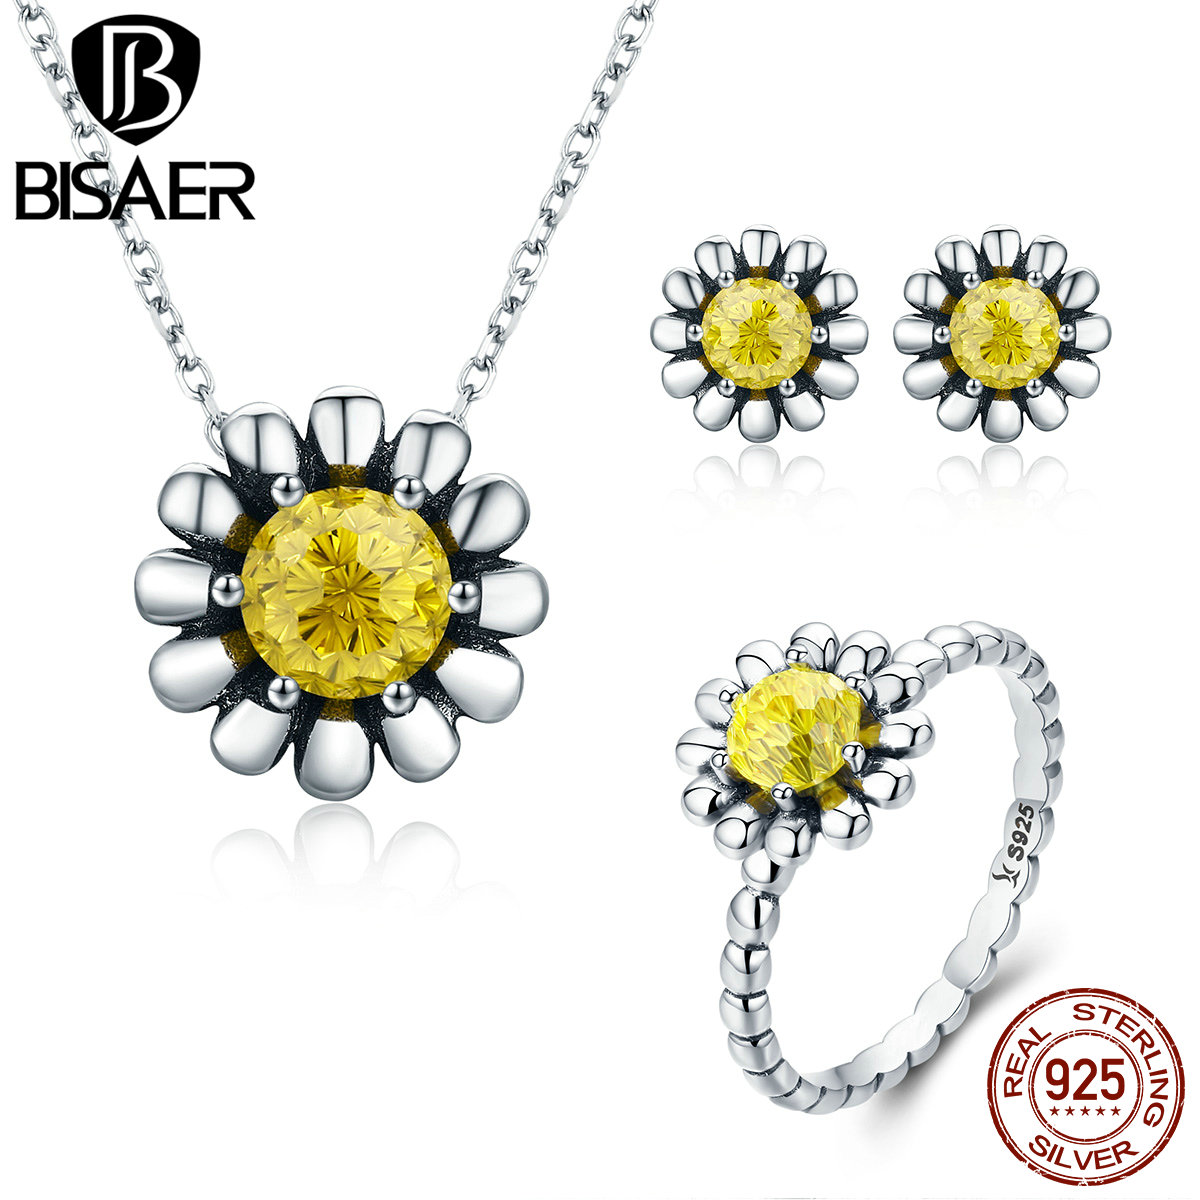 BISAER 100% 925 Sterling Silver Jewelry Sets Daisy Flower Yellow CZ Necklace Ring Jewelry Set Authentic Silver Jewelry GUS048BISAER 100% 925 Sterling Silver Jewelry Sets Daisy Flower Yellow CZ Necklace Ring Jewelry Set Authentic Silver Jewelry GUS048